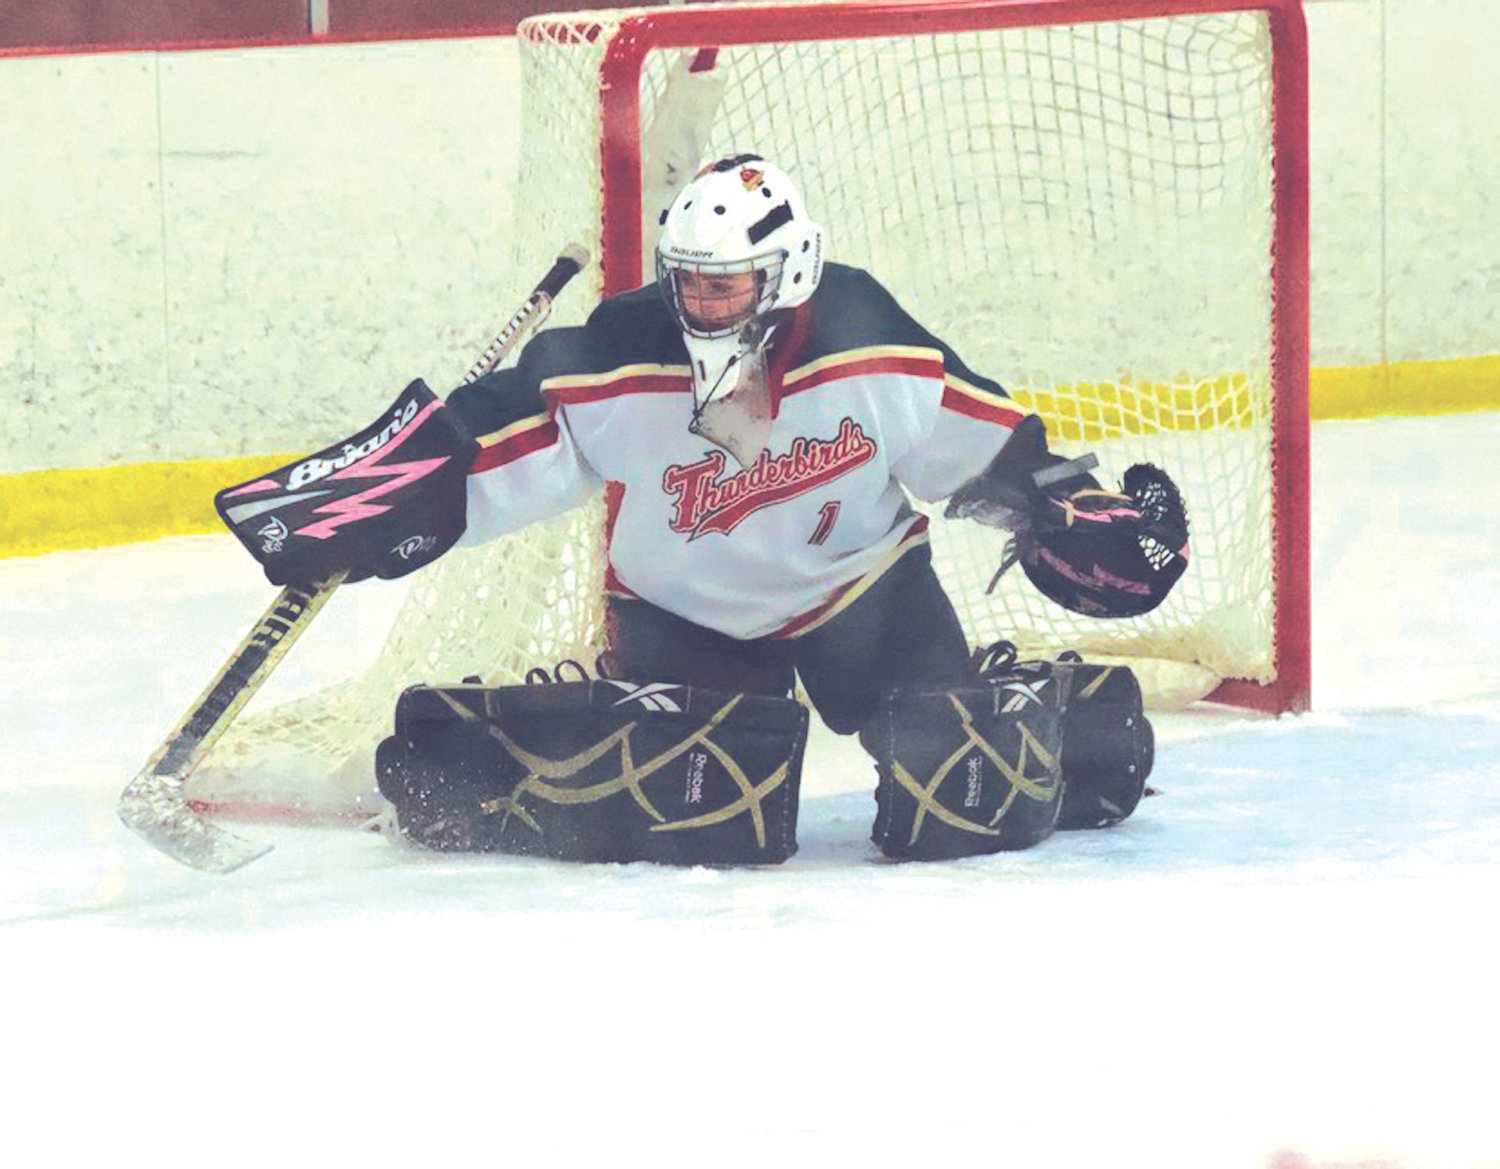 HITTING THE ICE: Cranston/East Greenwich co-op goalie Hannah Slaiby makes a stop against South County last week.